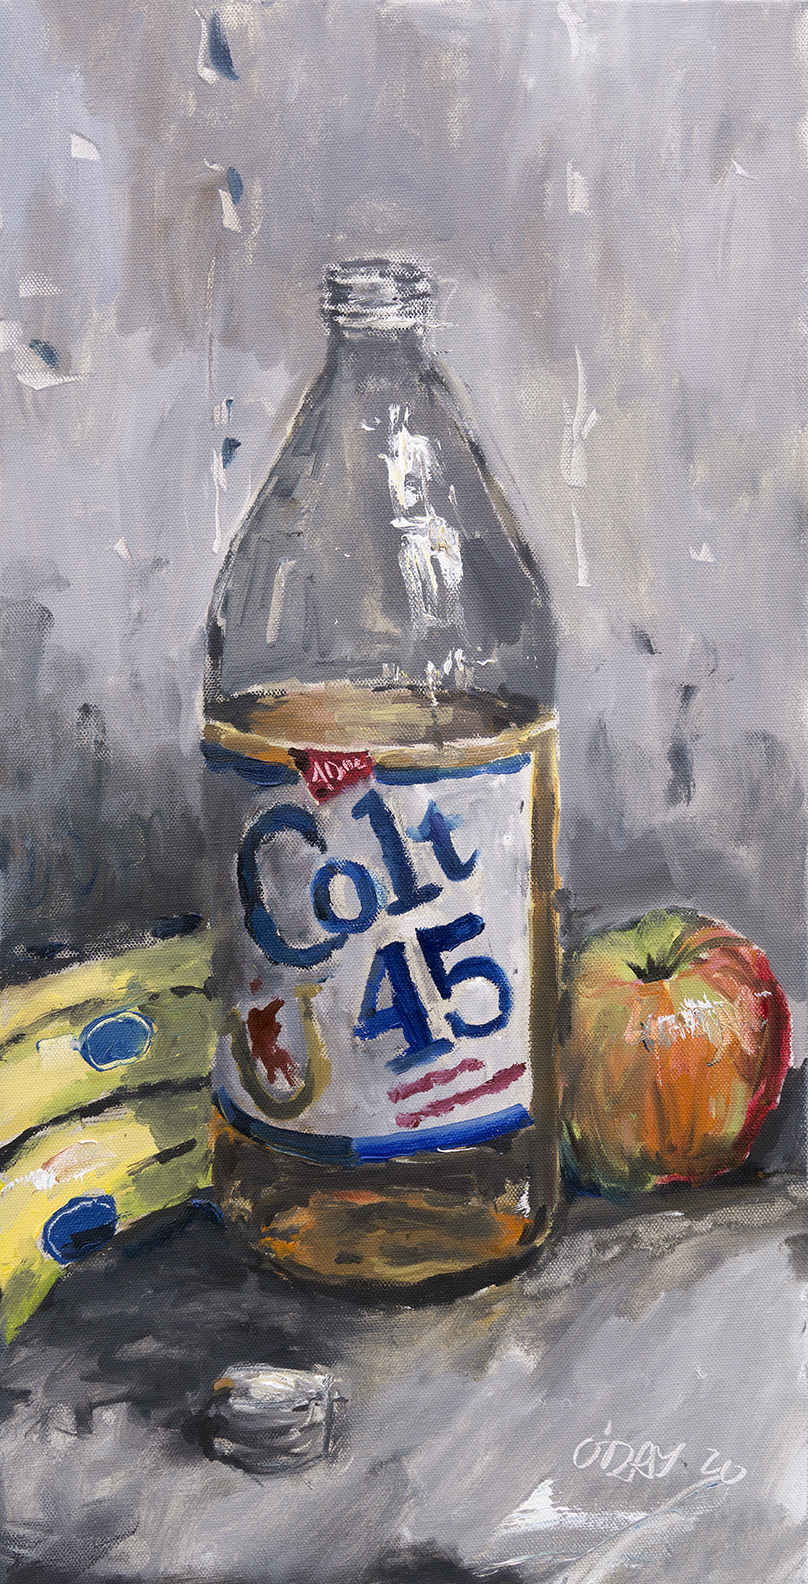 "Colt 45, oil on canvas, 30x15"", 2020 SOLD"